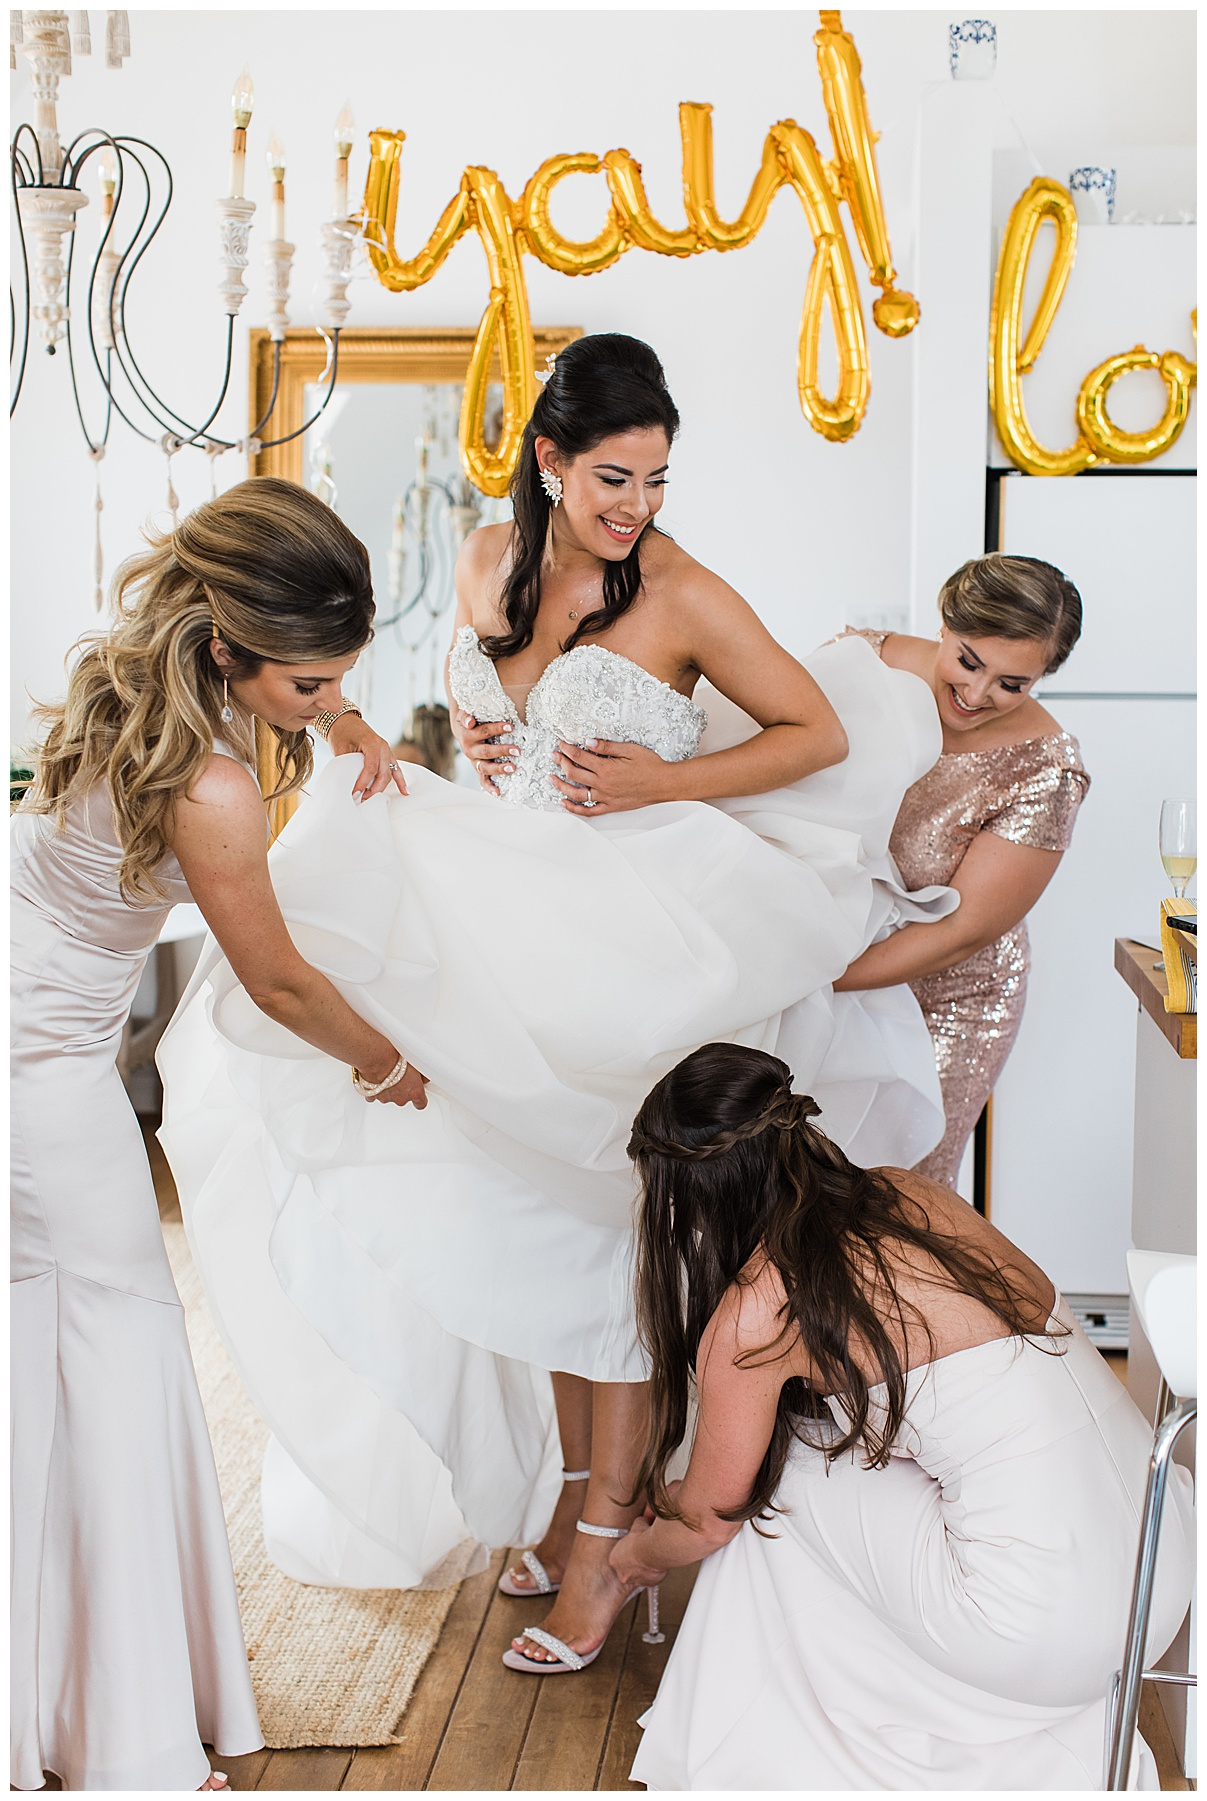 Bridesmaids helping bride put shoes on| Belcroft Estate Wedding| Toronto wedding photographer| Ontario wedding photographer| 3photography